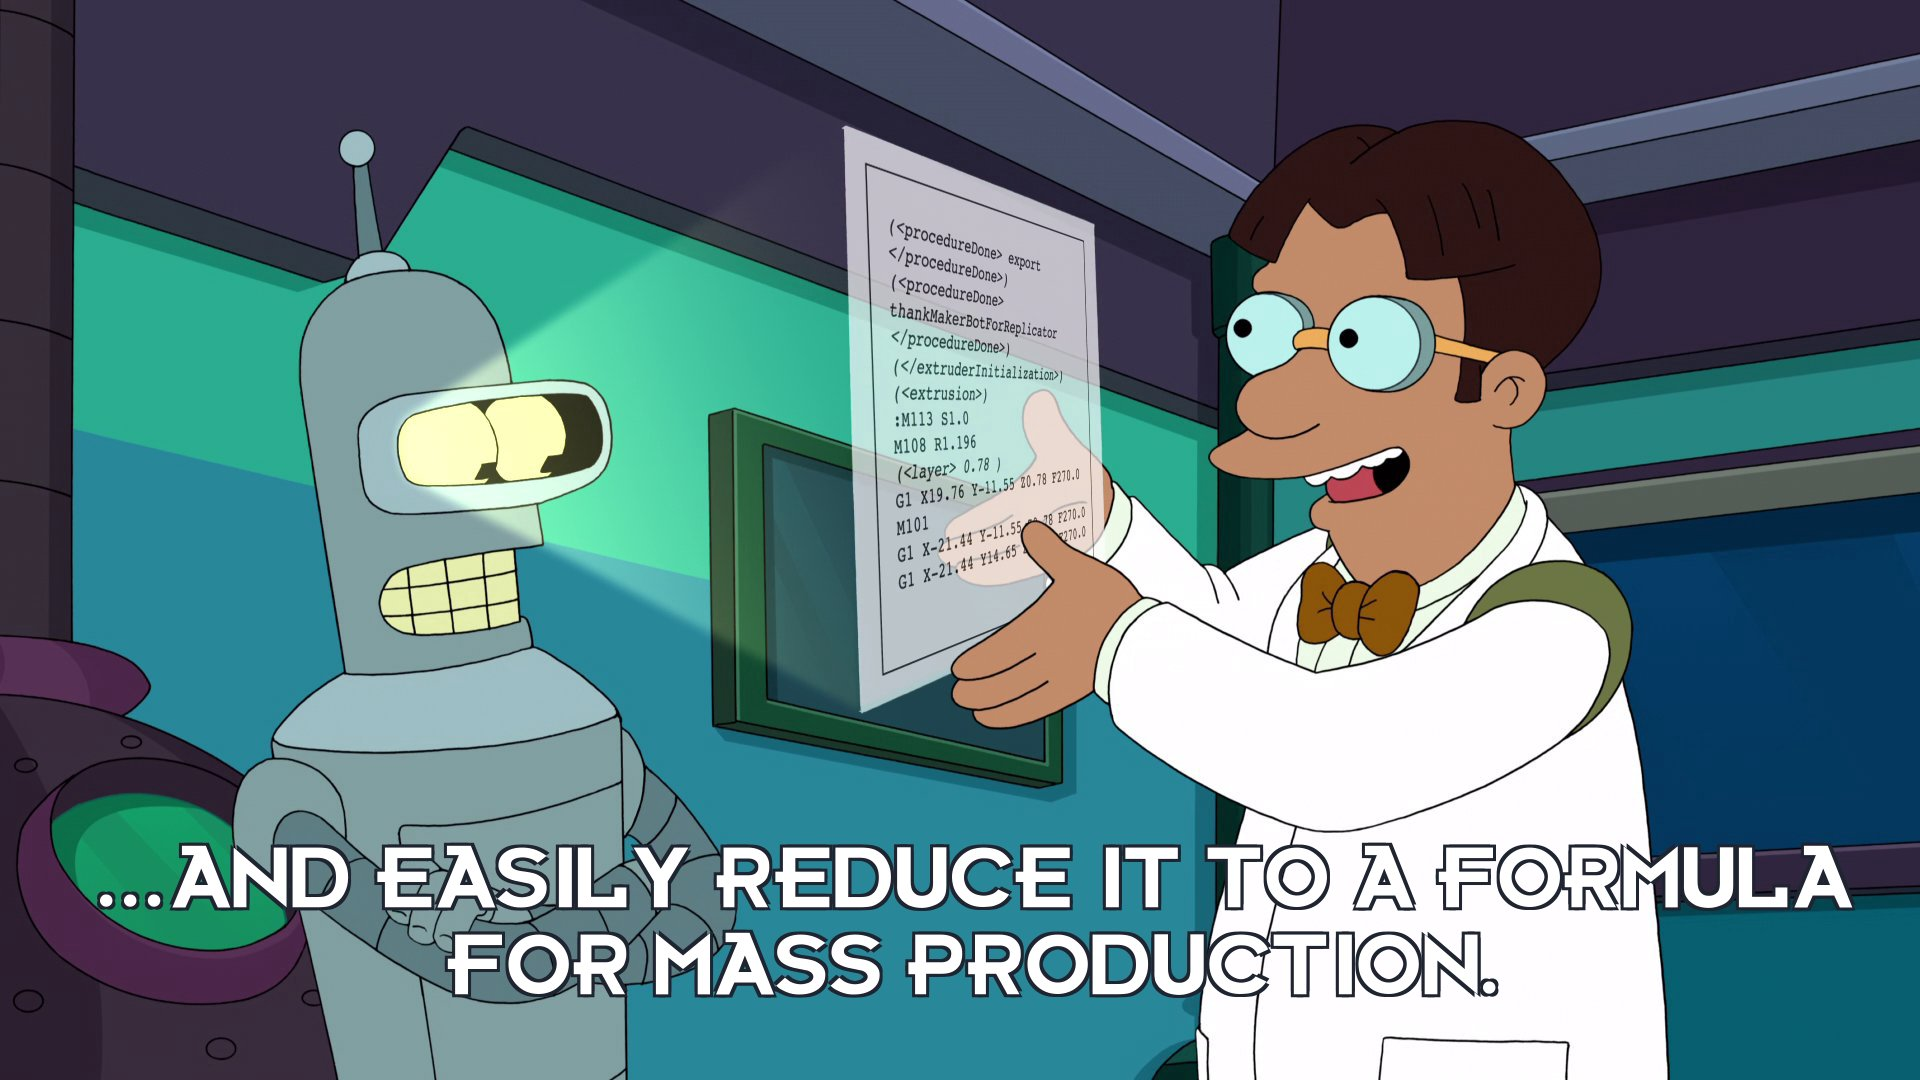 Dr Ben Beeler: ...and easily reduce it to a formula for mass production.